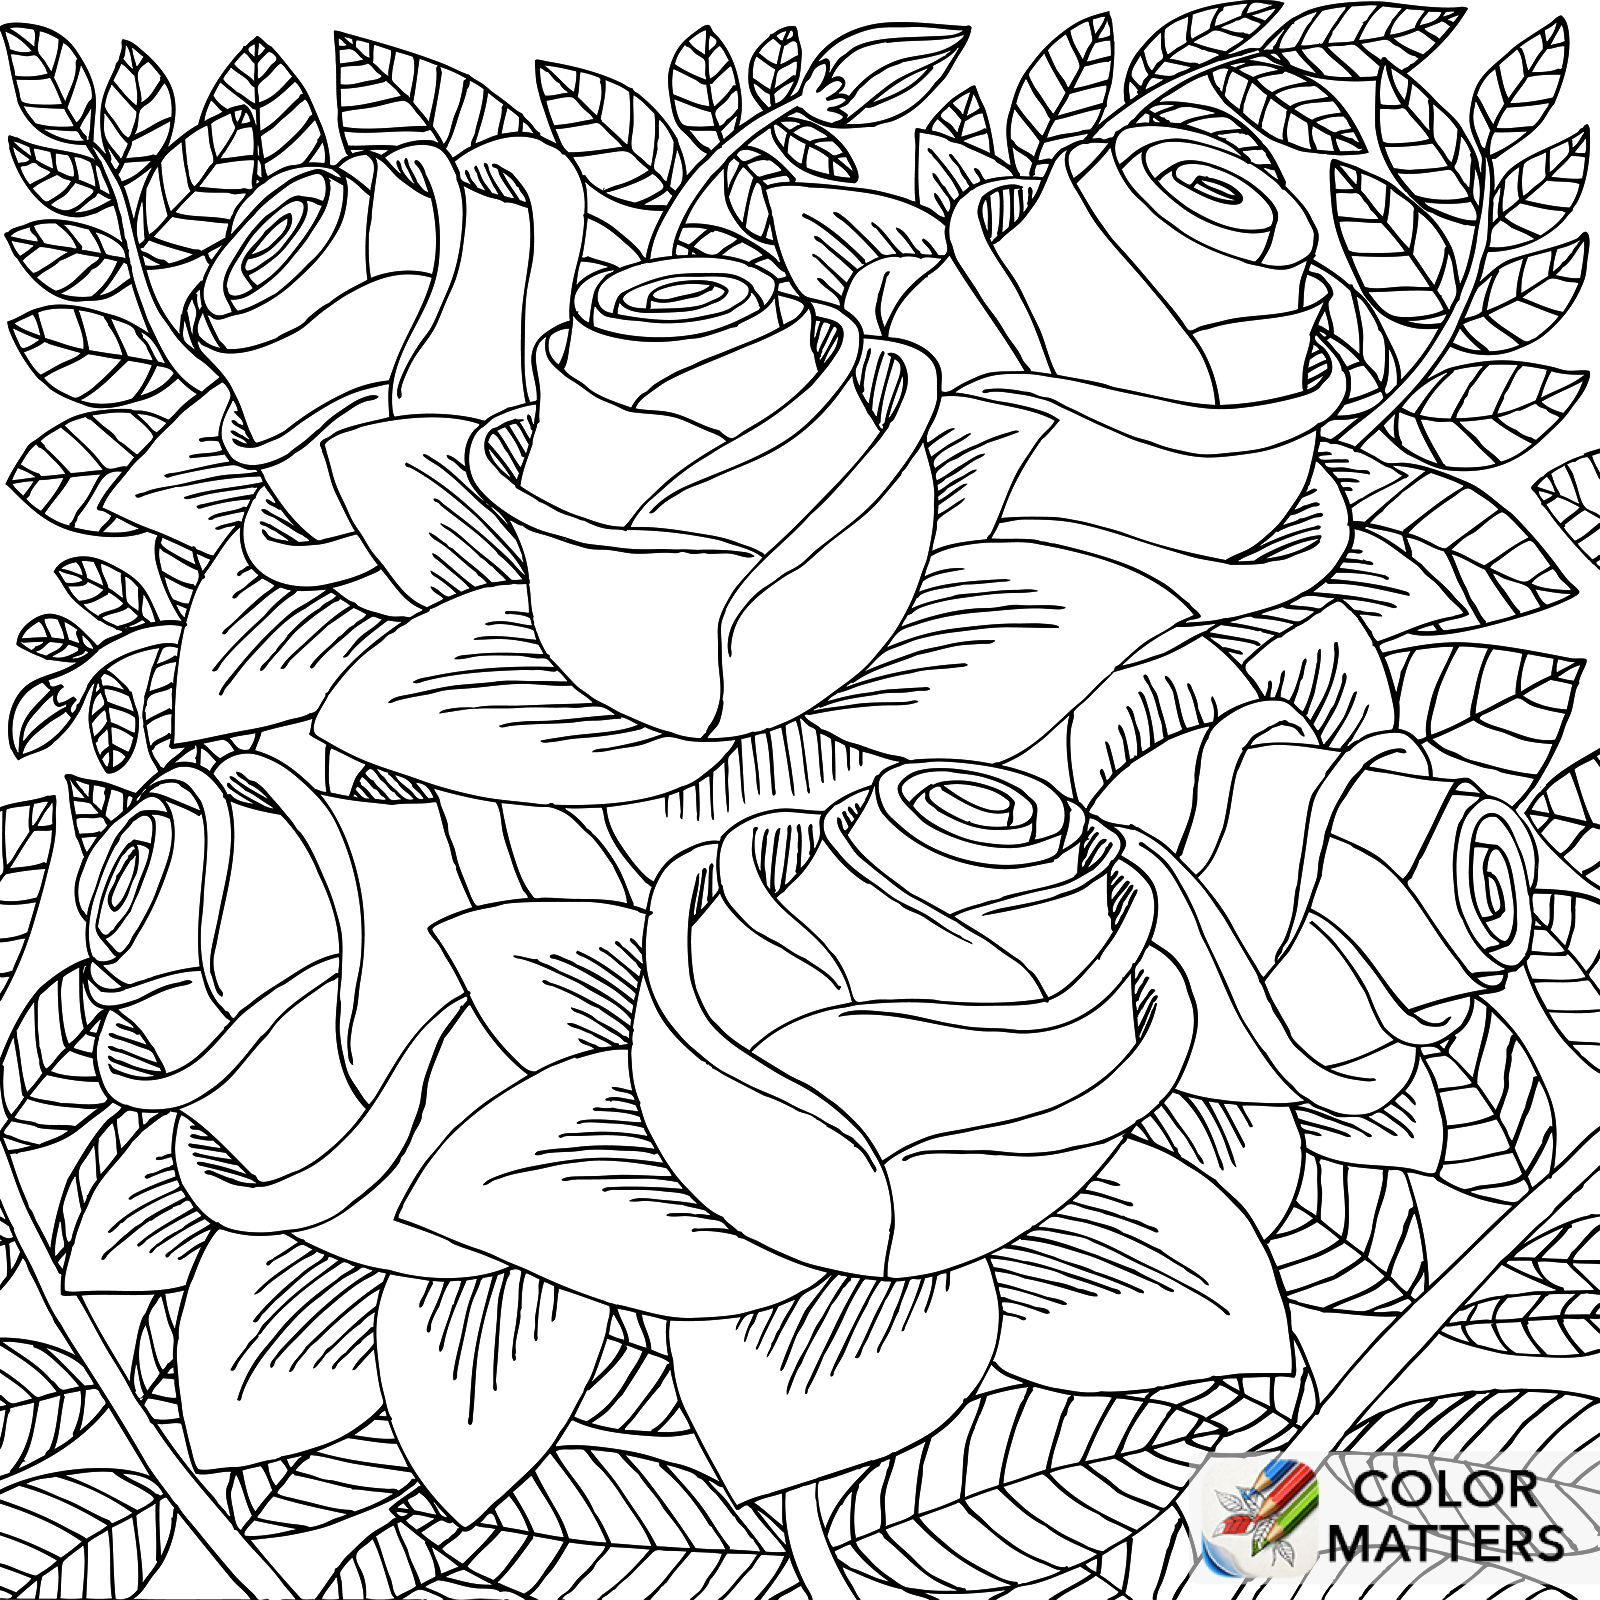 Pin by Deborah Keeton on Coloring pages | Pinterest | Adult coloring ...